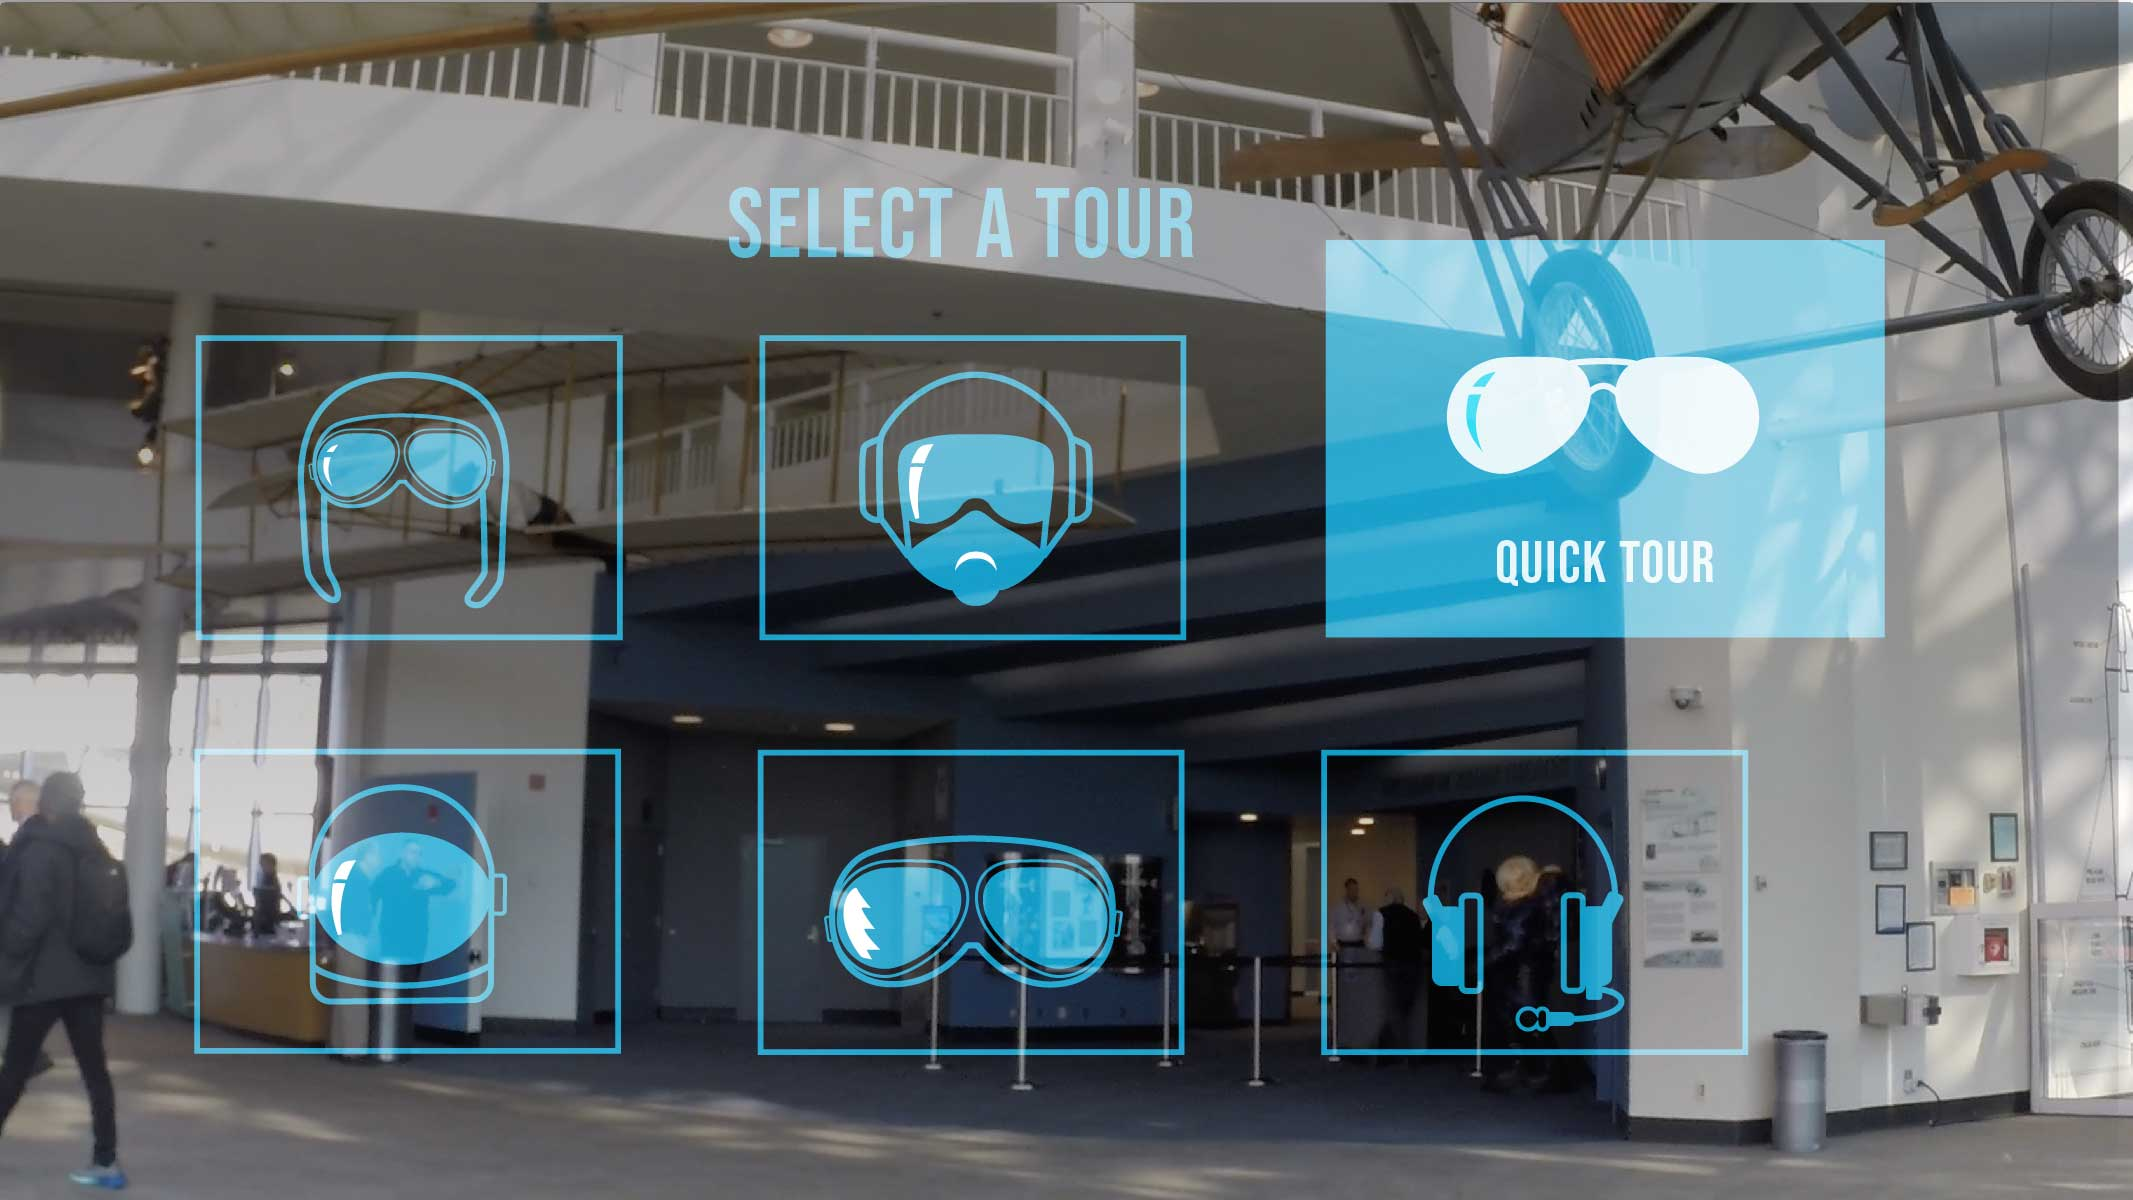 a mockup of the FARTHER interface inviting the user to choose from one of six tours. the Quick Tour option is highlighted.